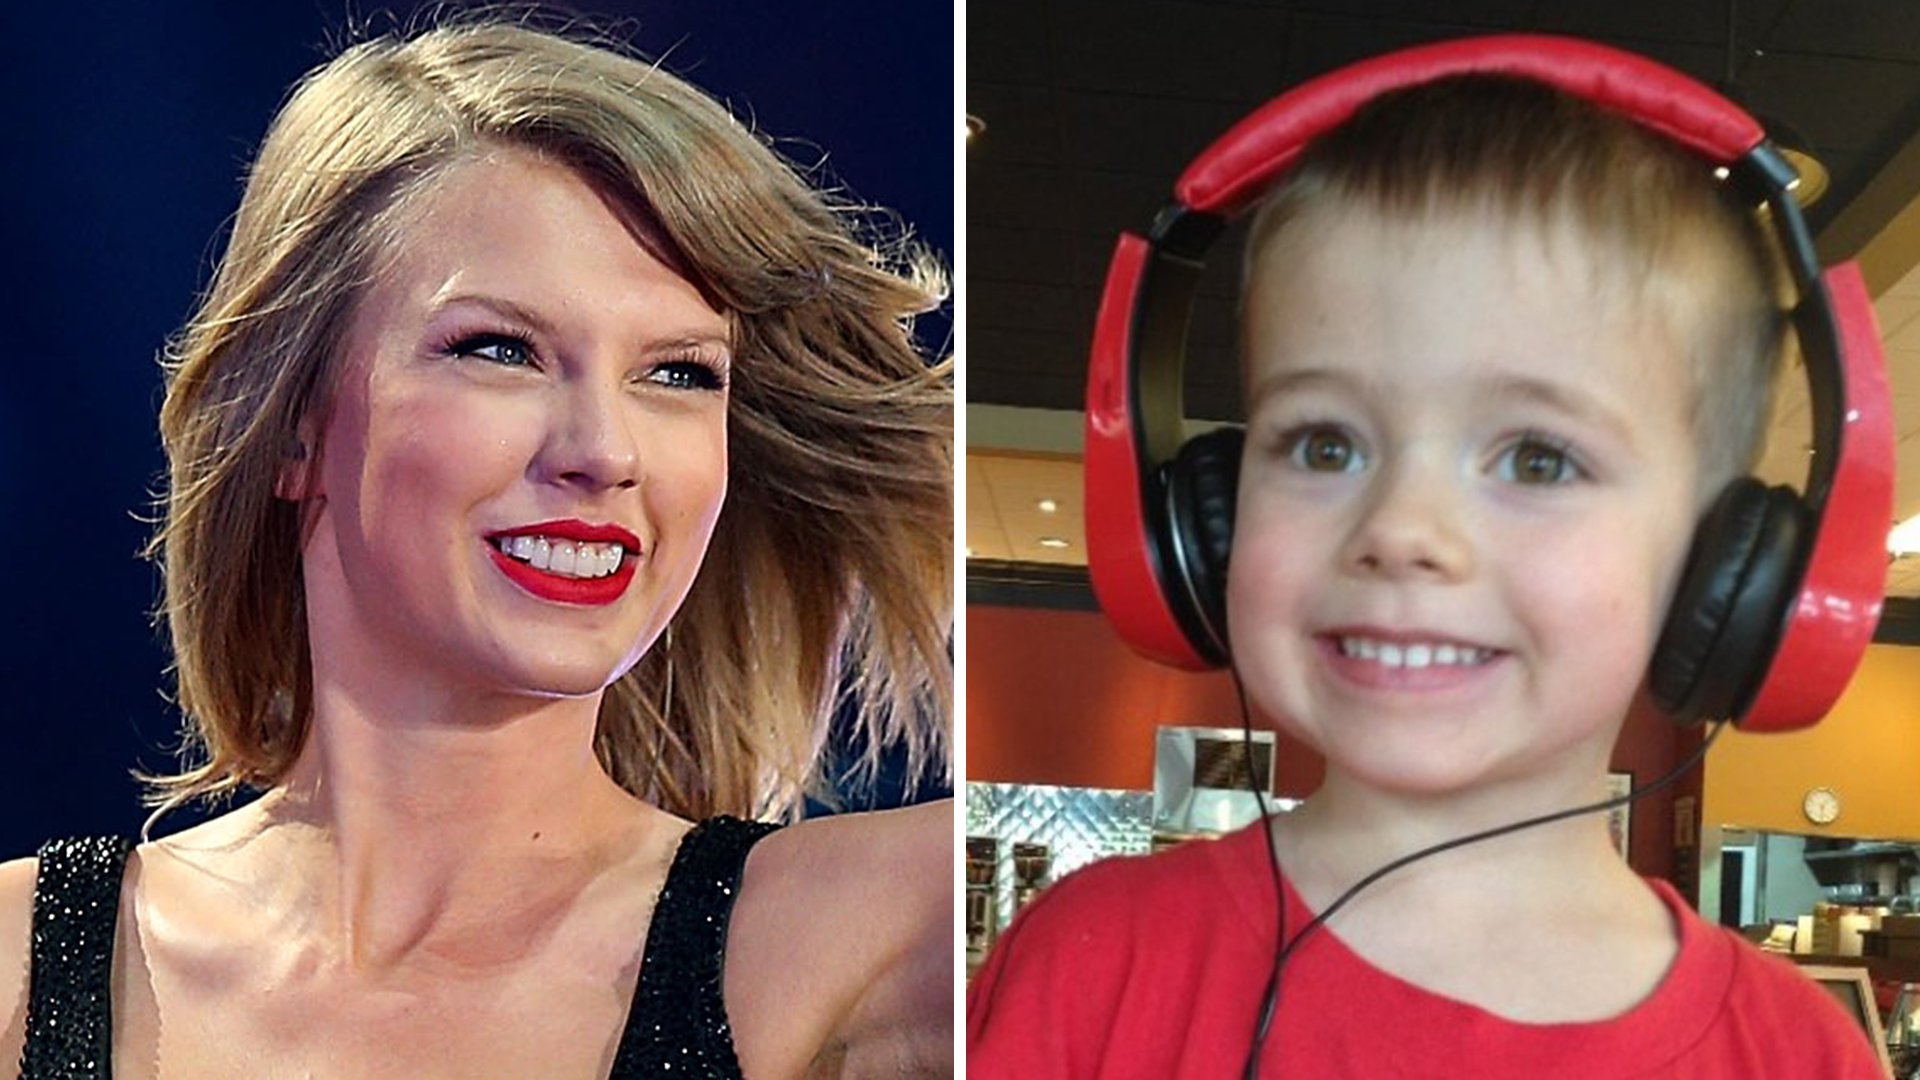 Taylor Swift donated $10,000 so this little boy could get an autism therapy dog